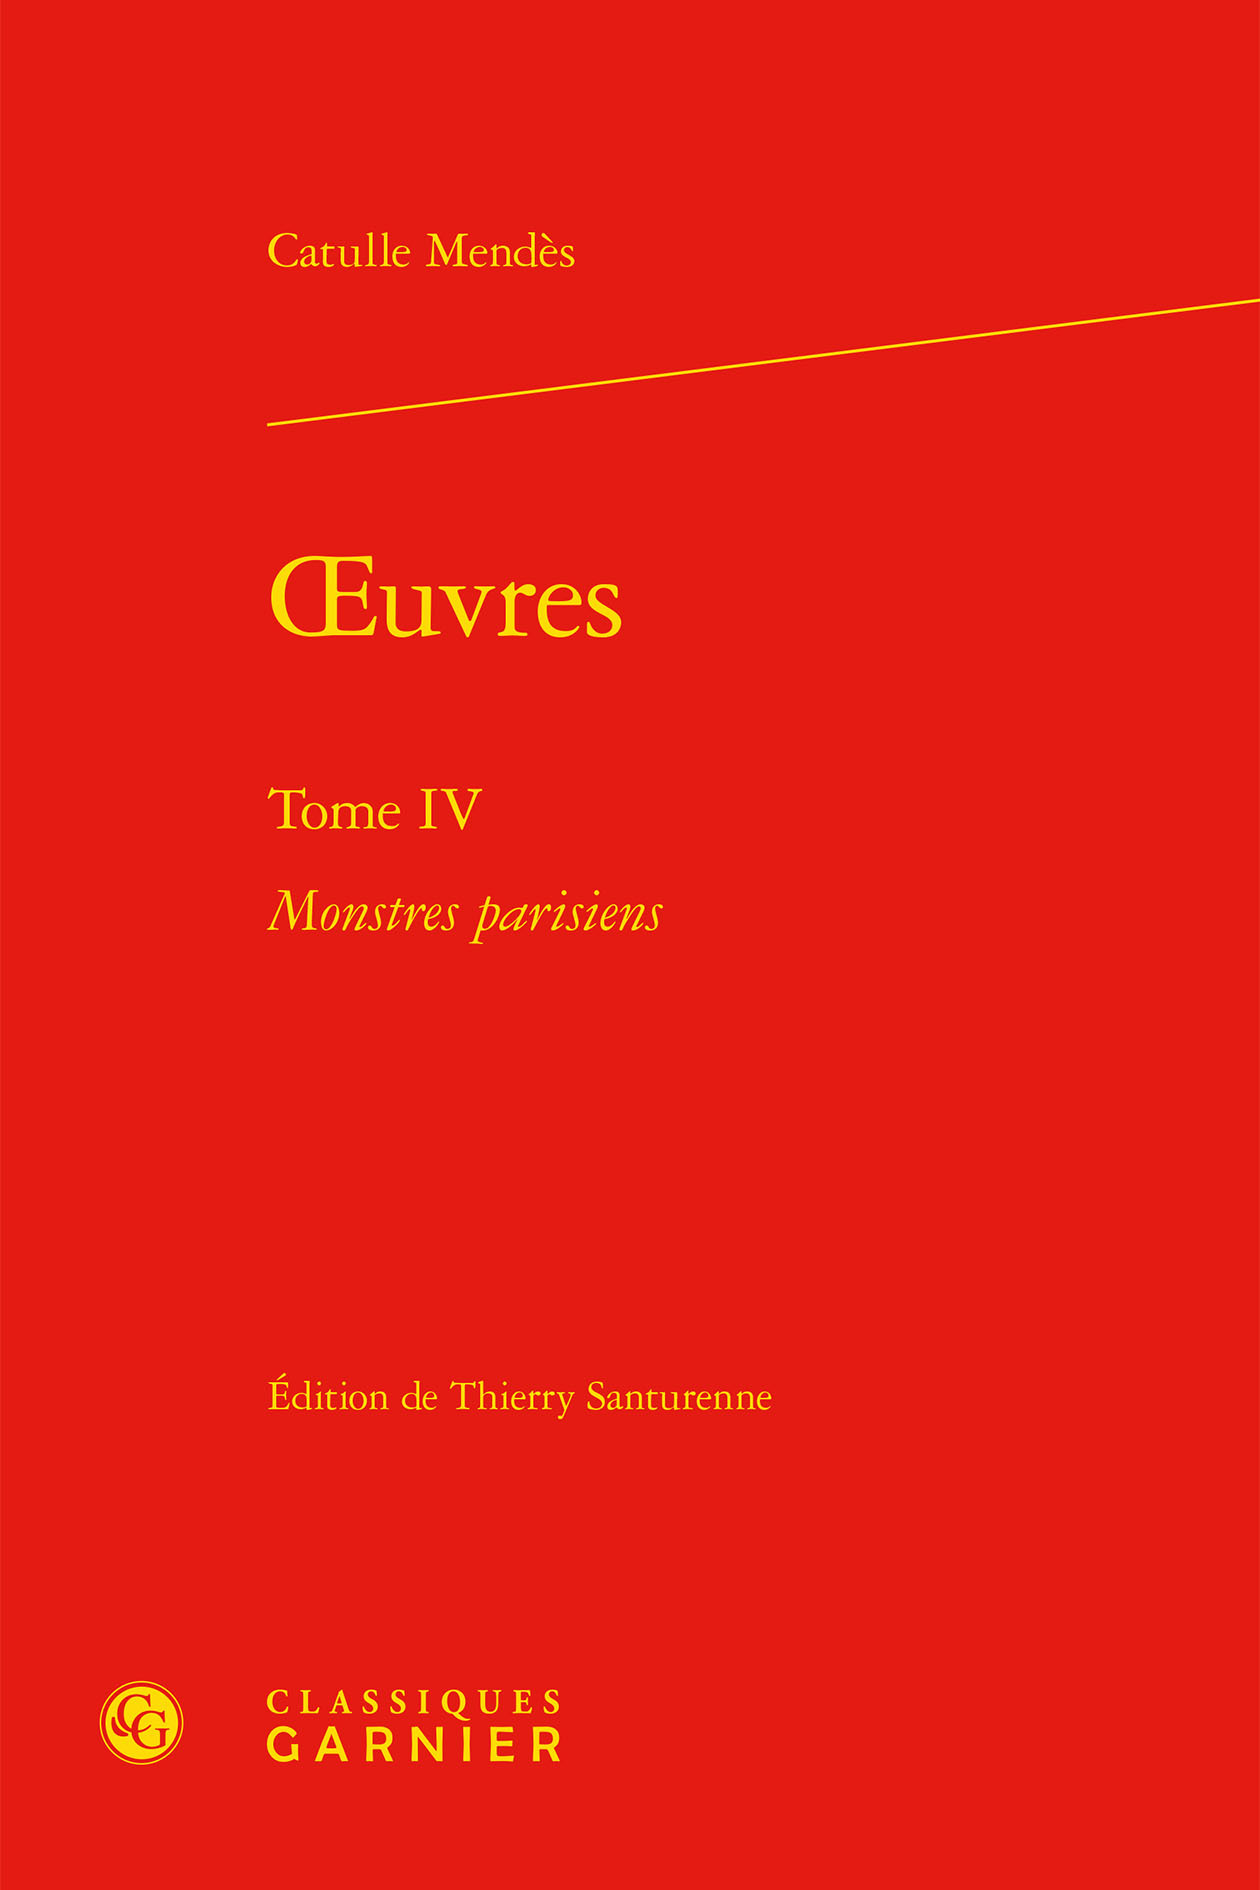 OEUVRES. TOME IV - MONSTRES PARISIENS